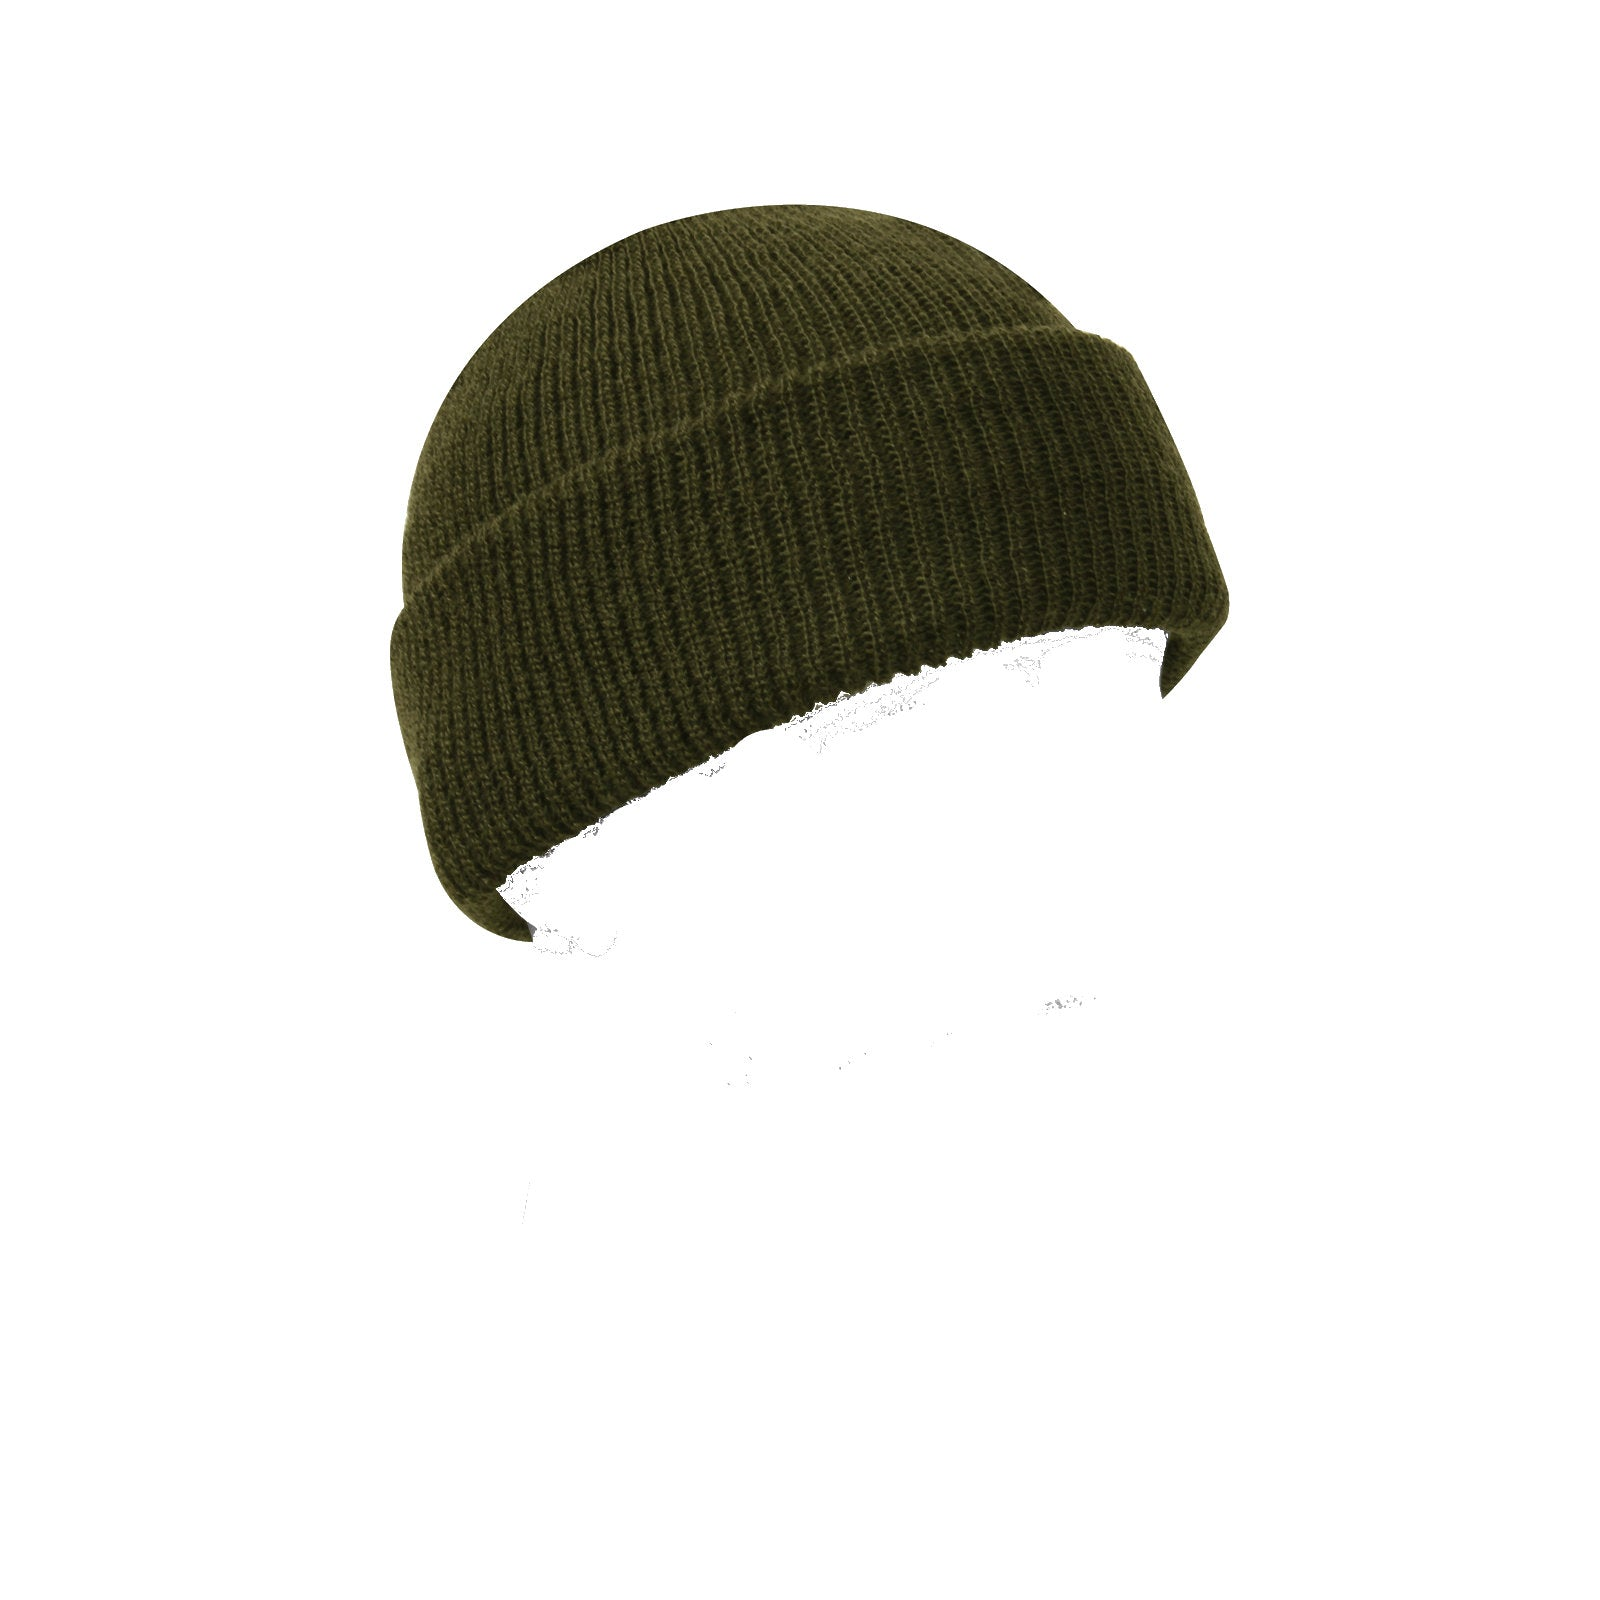 GI Wool Watchcap Olive Drab